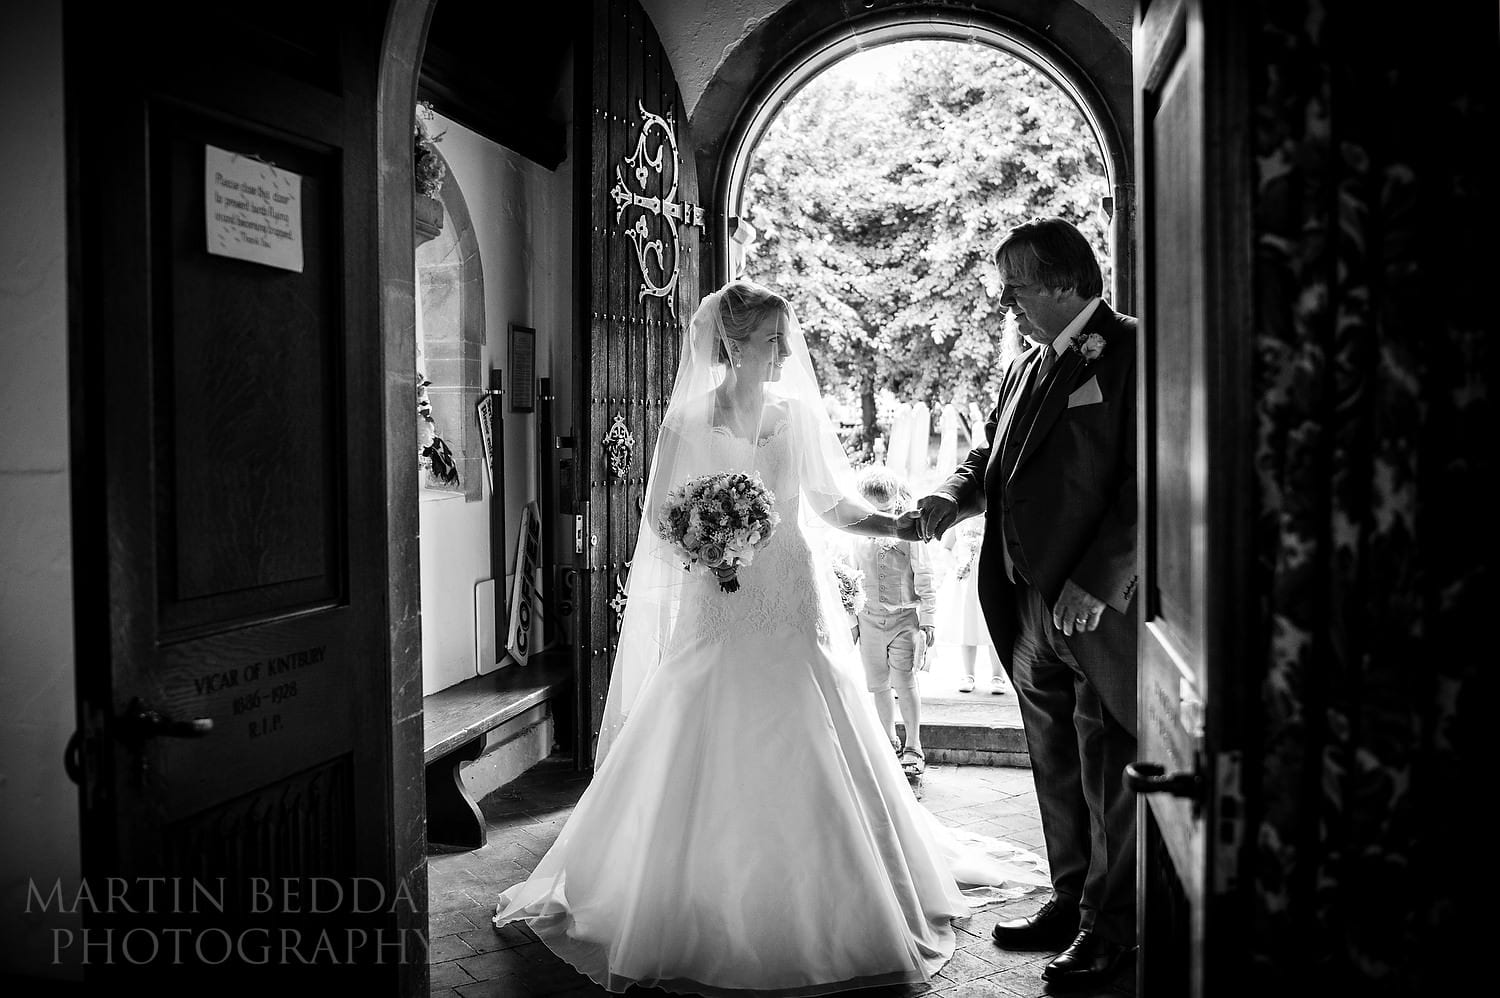 Bride and her father before entering the church